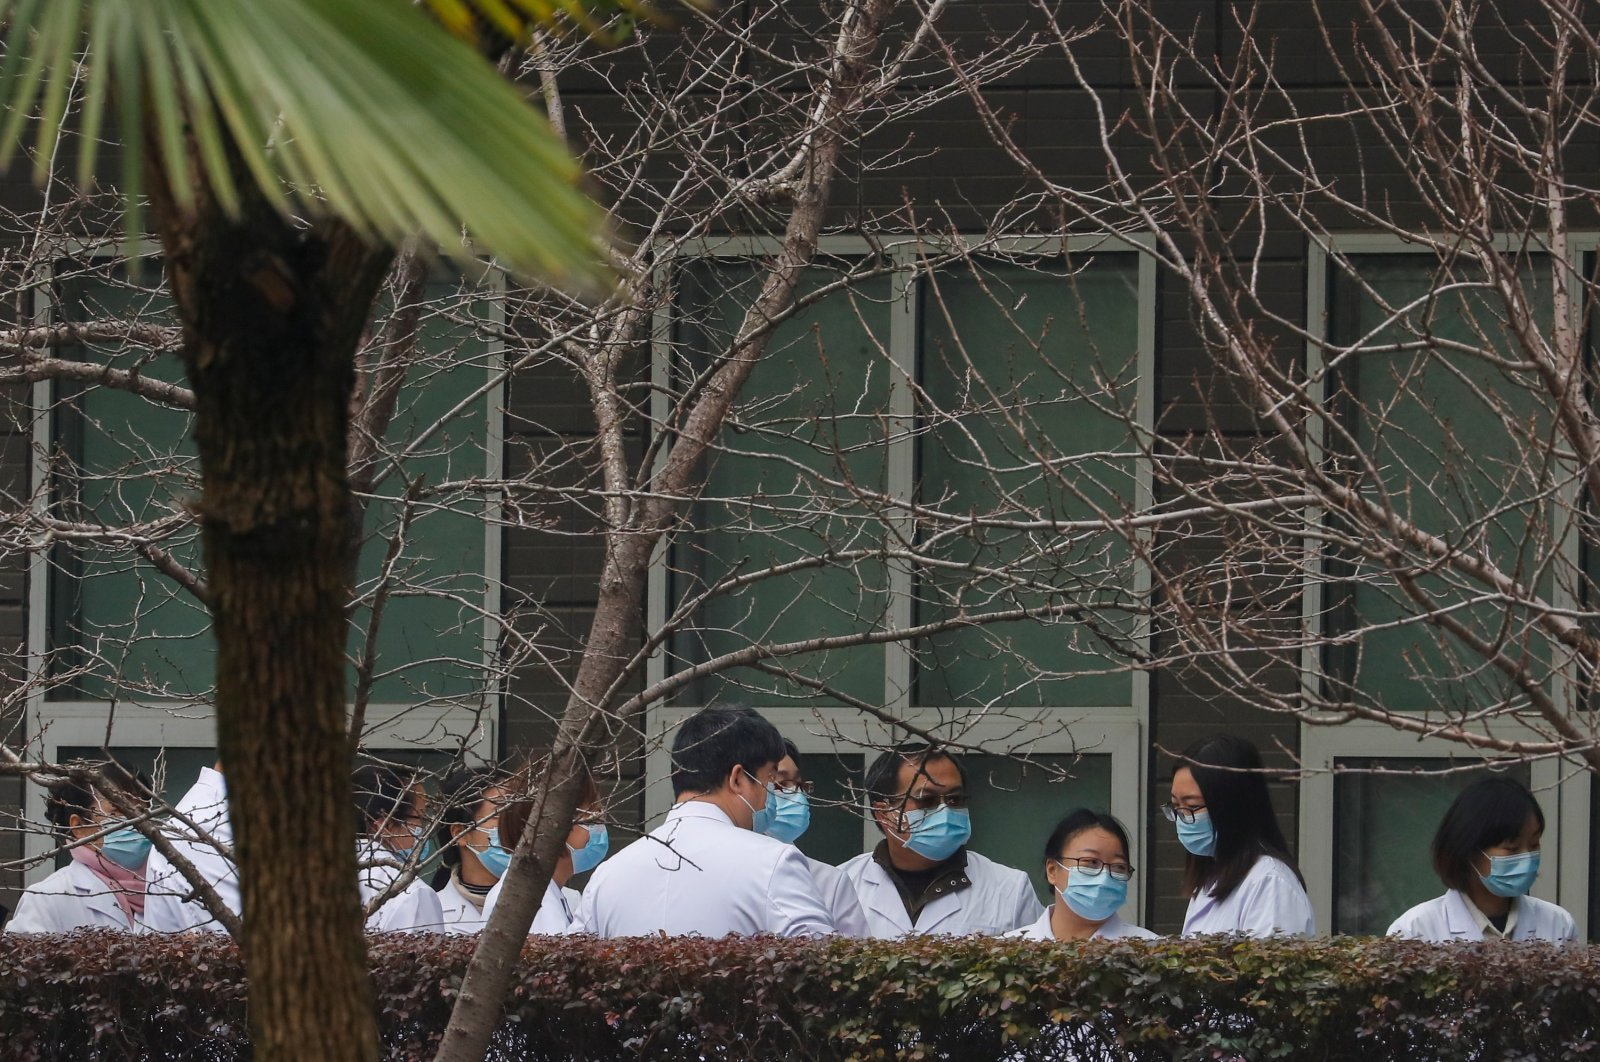 Chinese scientists and officials in lab coats wait at the Hubei Animal Epidemic Disease Prevention and Control Center during a visit of a team of the World Health Organization (WHO), tasked with investigating the origins of the coronavirus disease (COVID-19), in Wuhan, Hubei province, China, Feb. 2, 2021. (Reuters Photo)